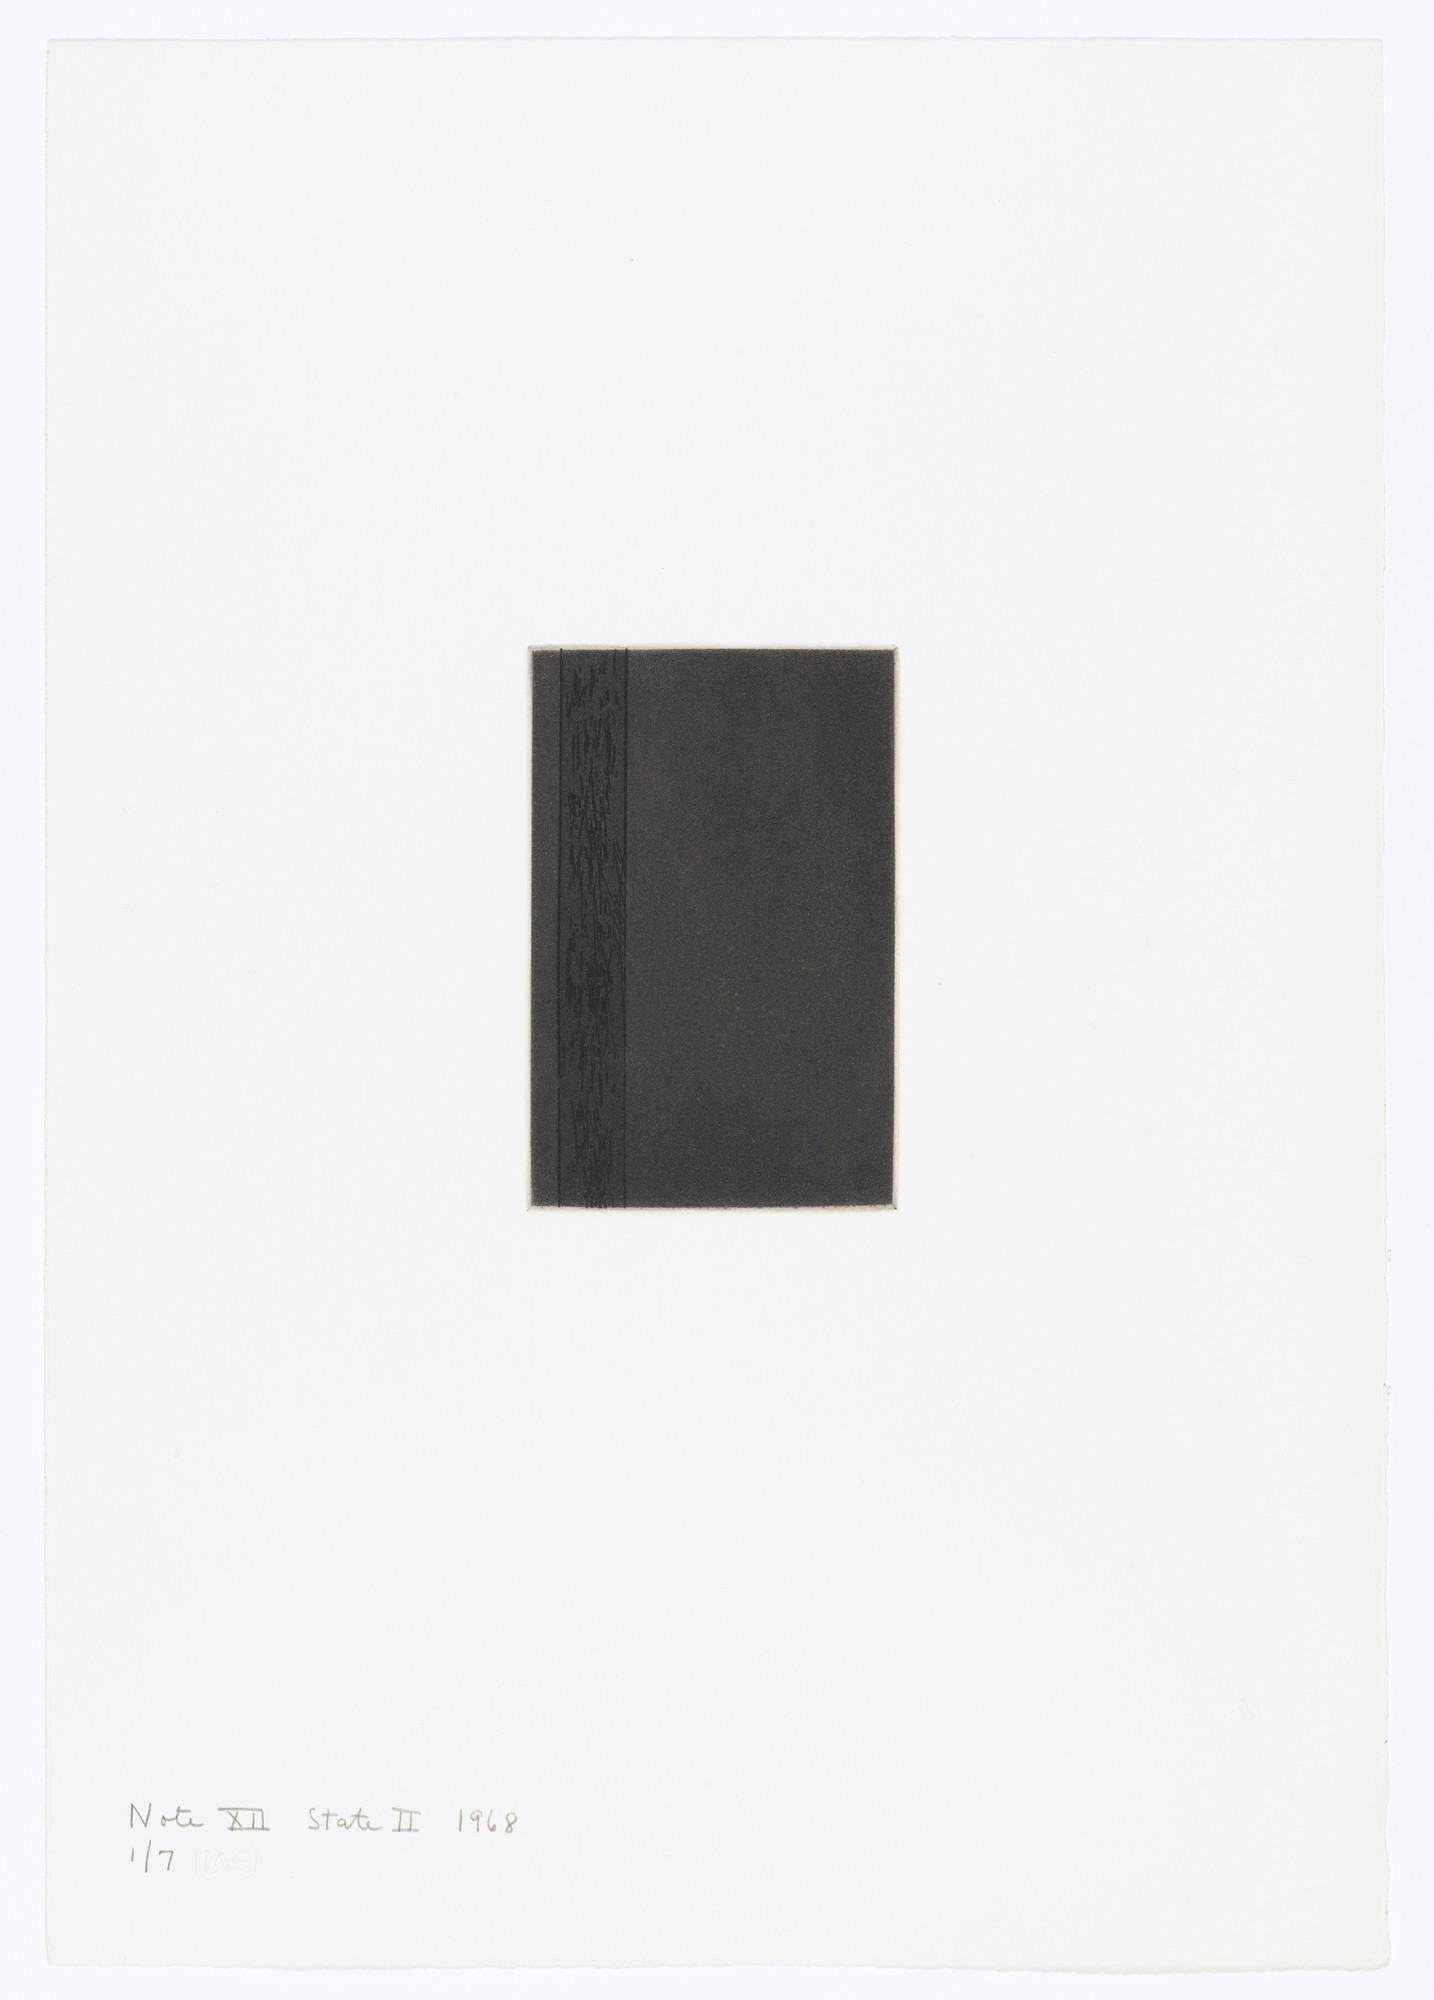 Barnett Newman. Note XII (State II) from Notes. 1968